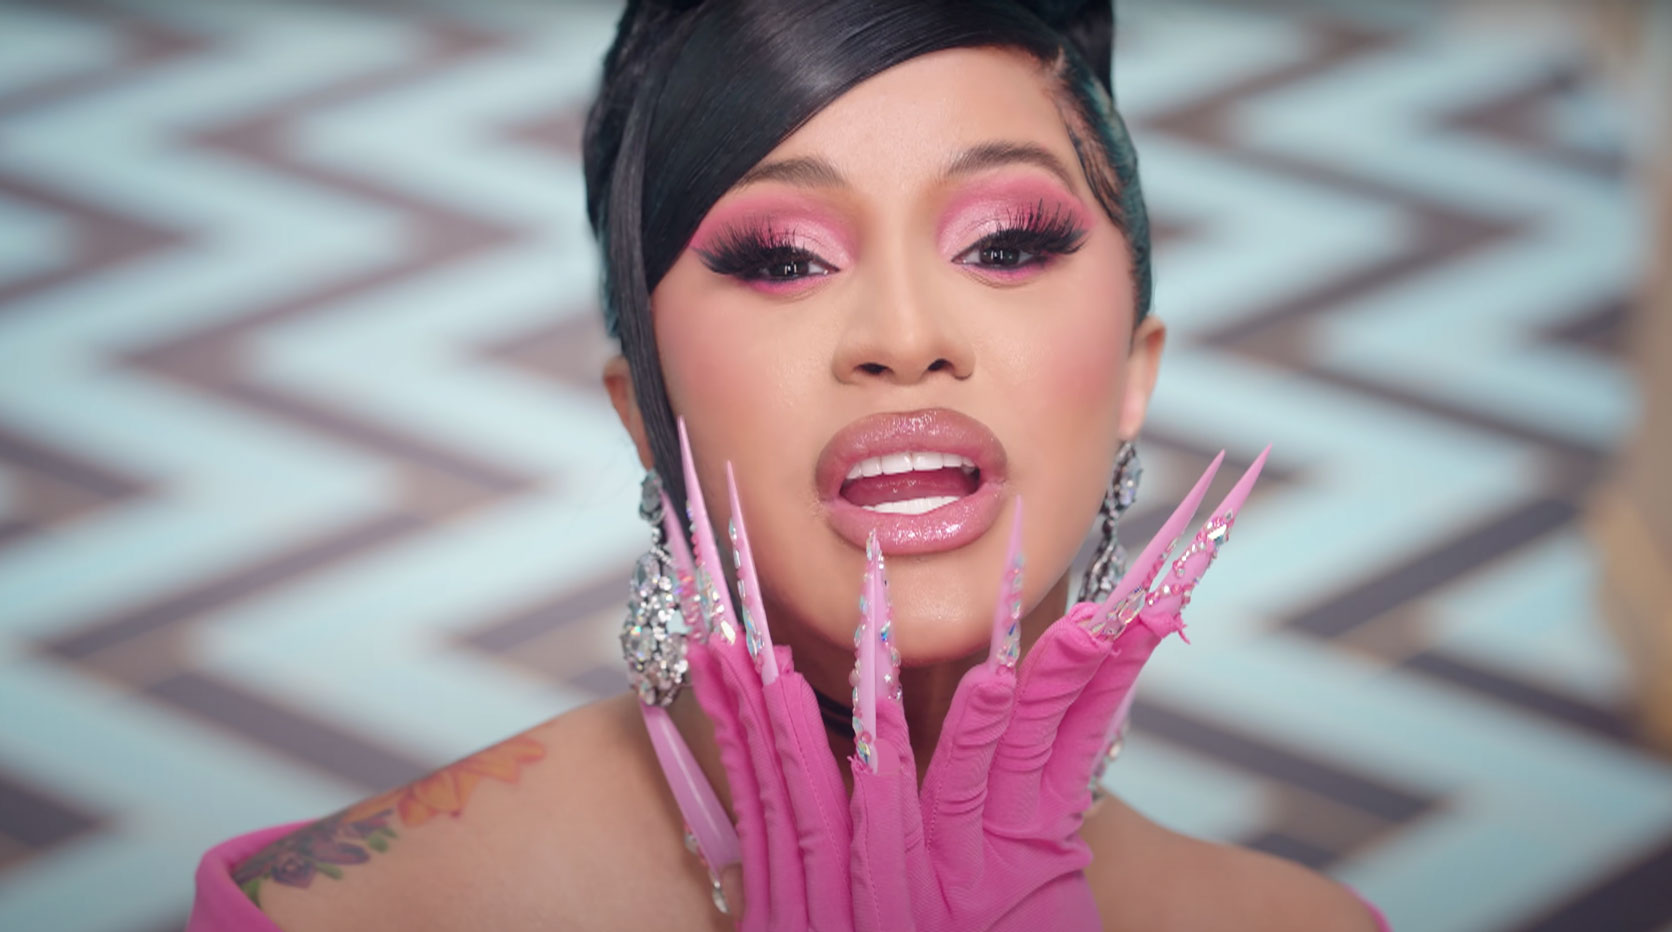 Cardi B on her 'nasty' song and building her music legacy